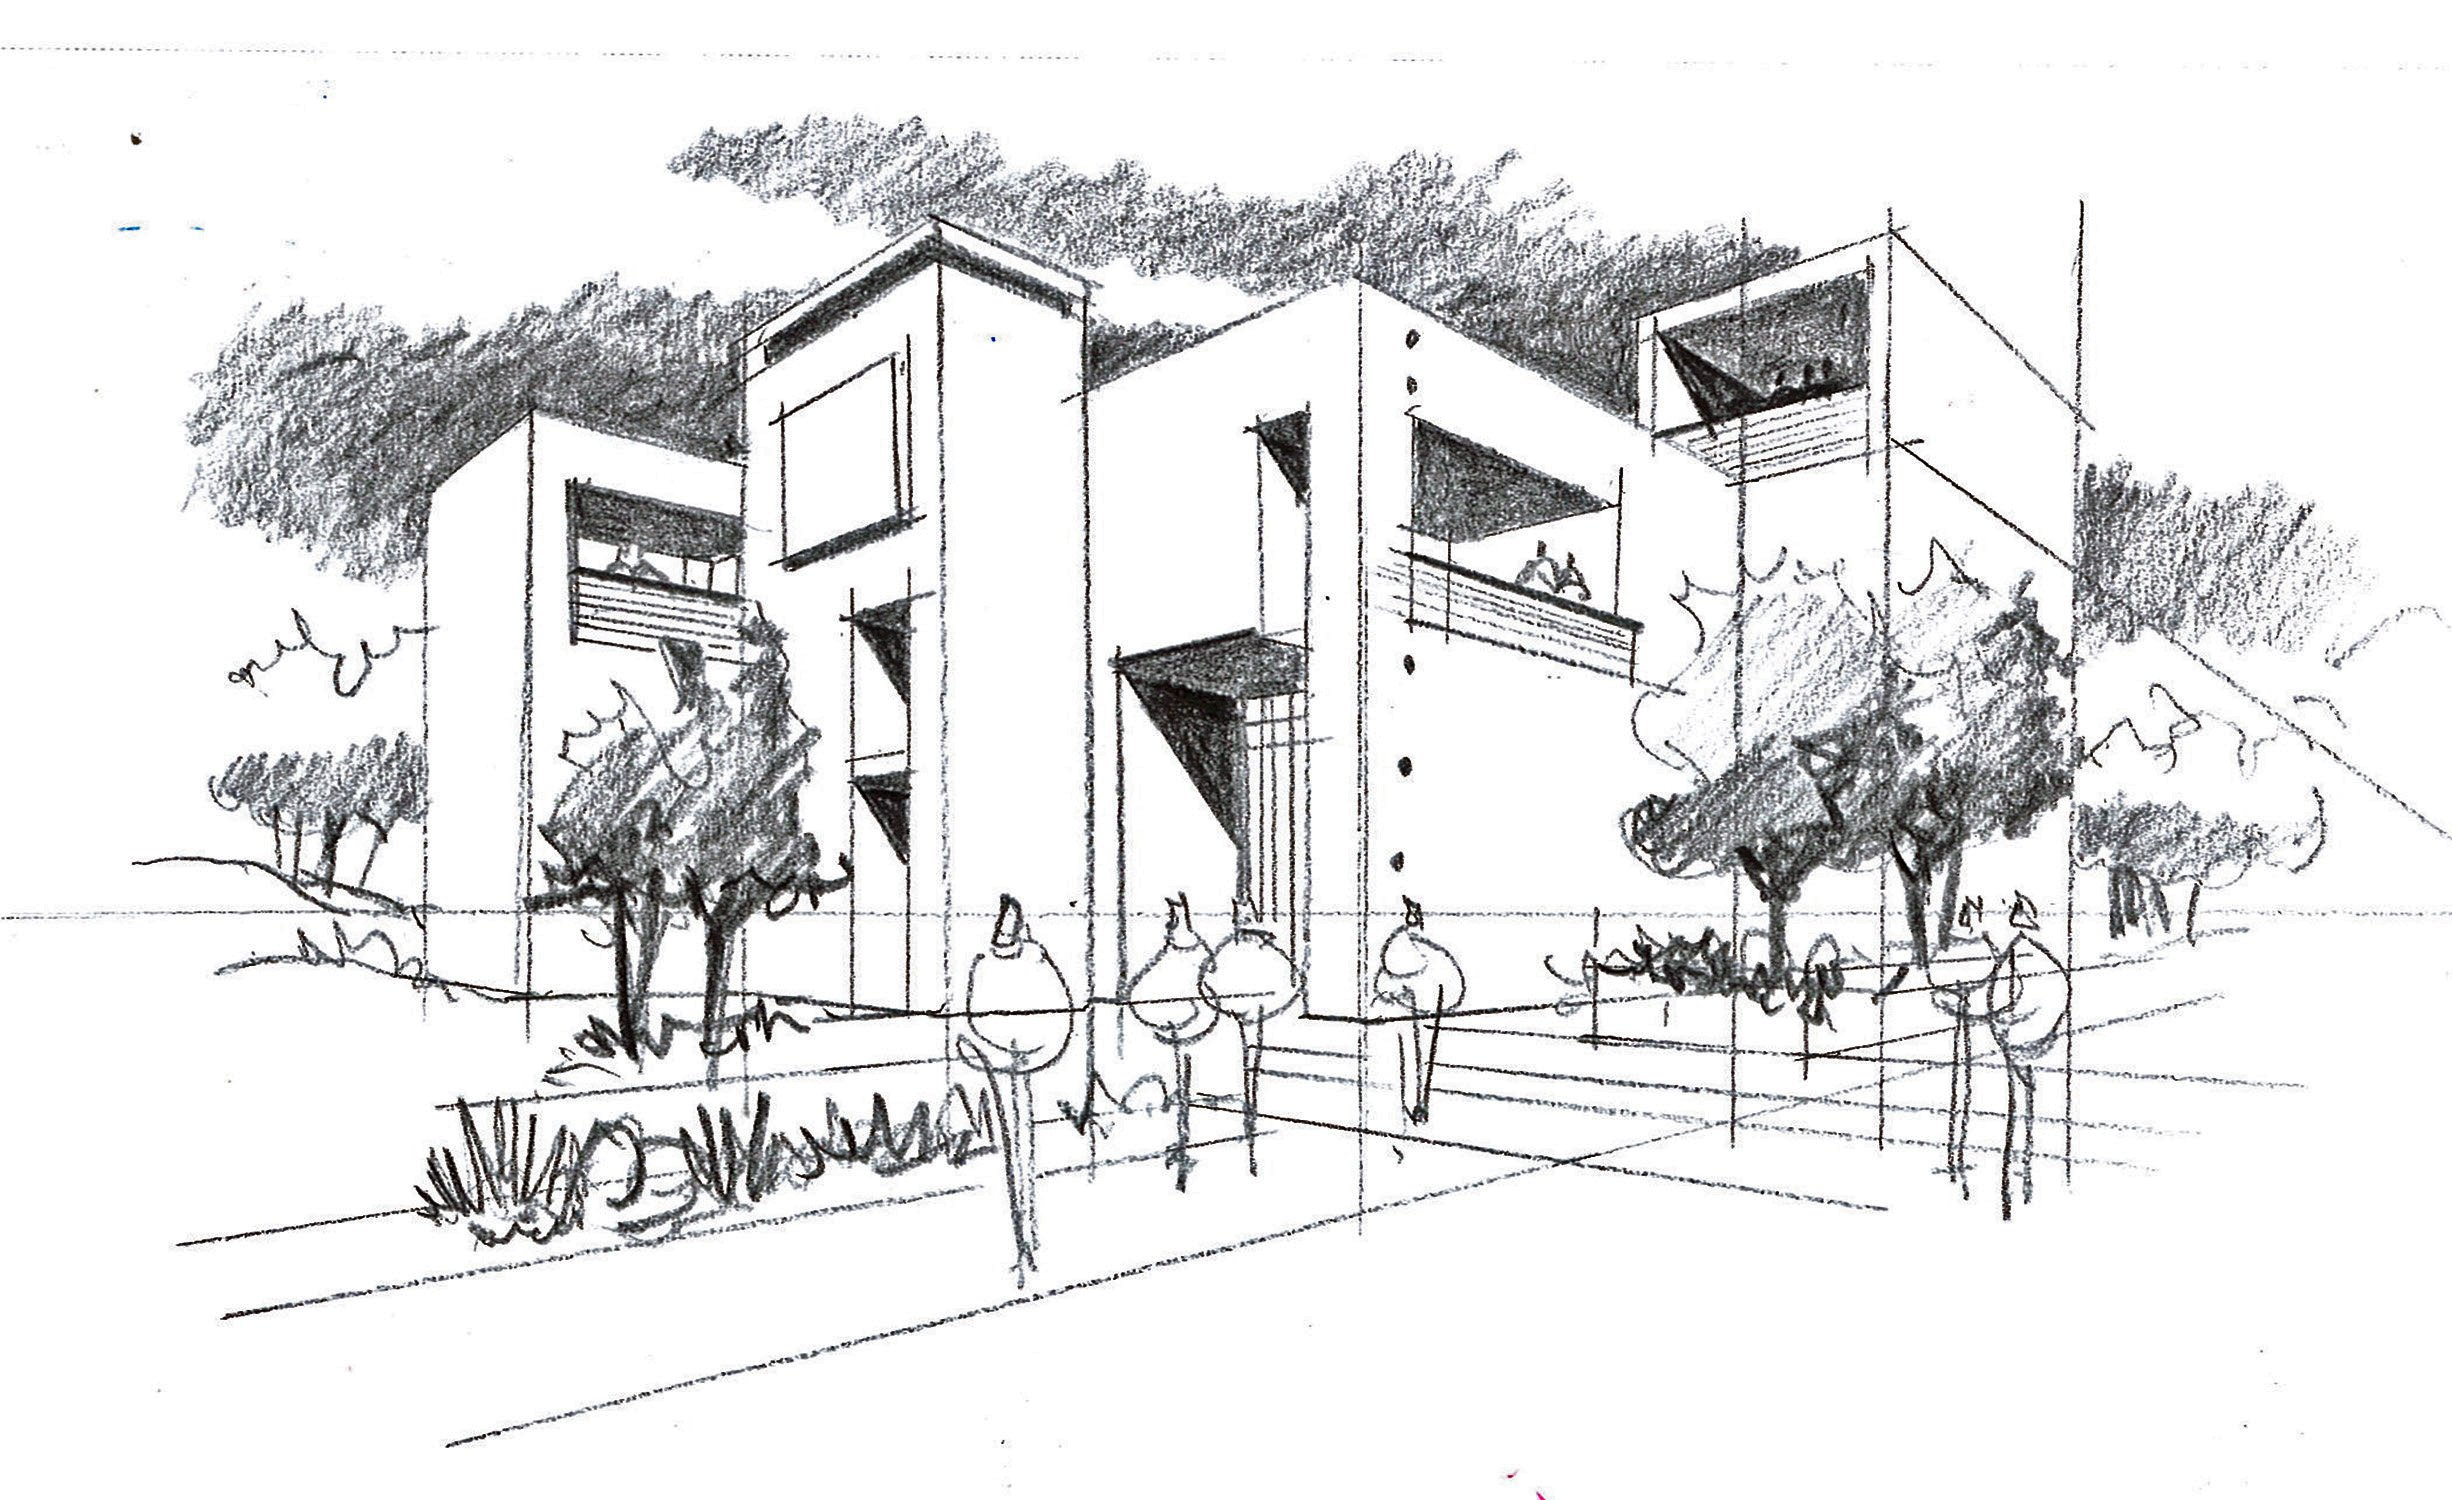 Reference Architectural Sketch for Exterior Renderings